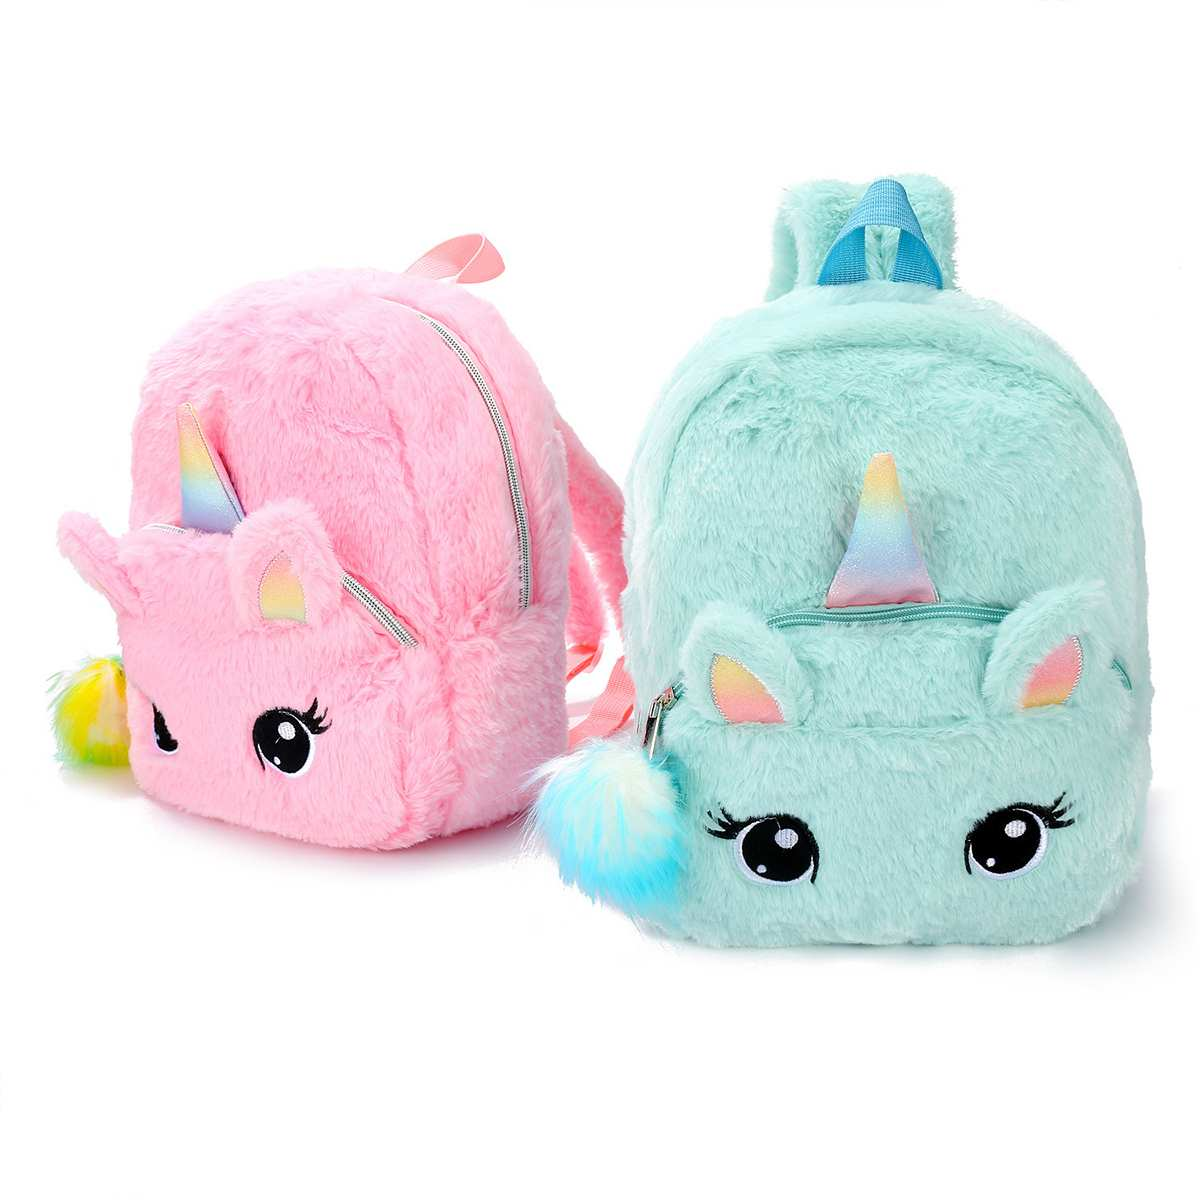 Unicorns Cartoon School Book Bag Backpacks Cute Fashion Fur Backpacks For Girls Travel Backpack Children Schoolbag Kids Gift